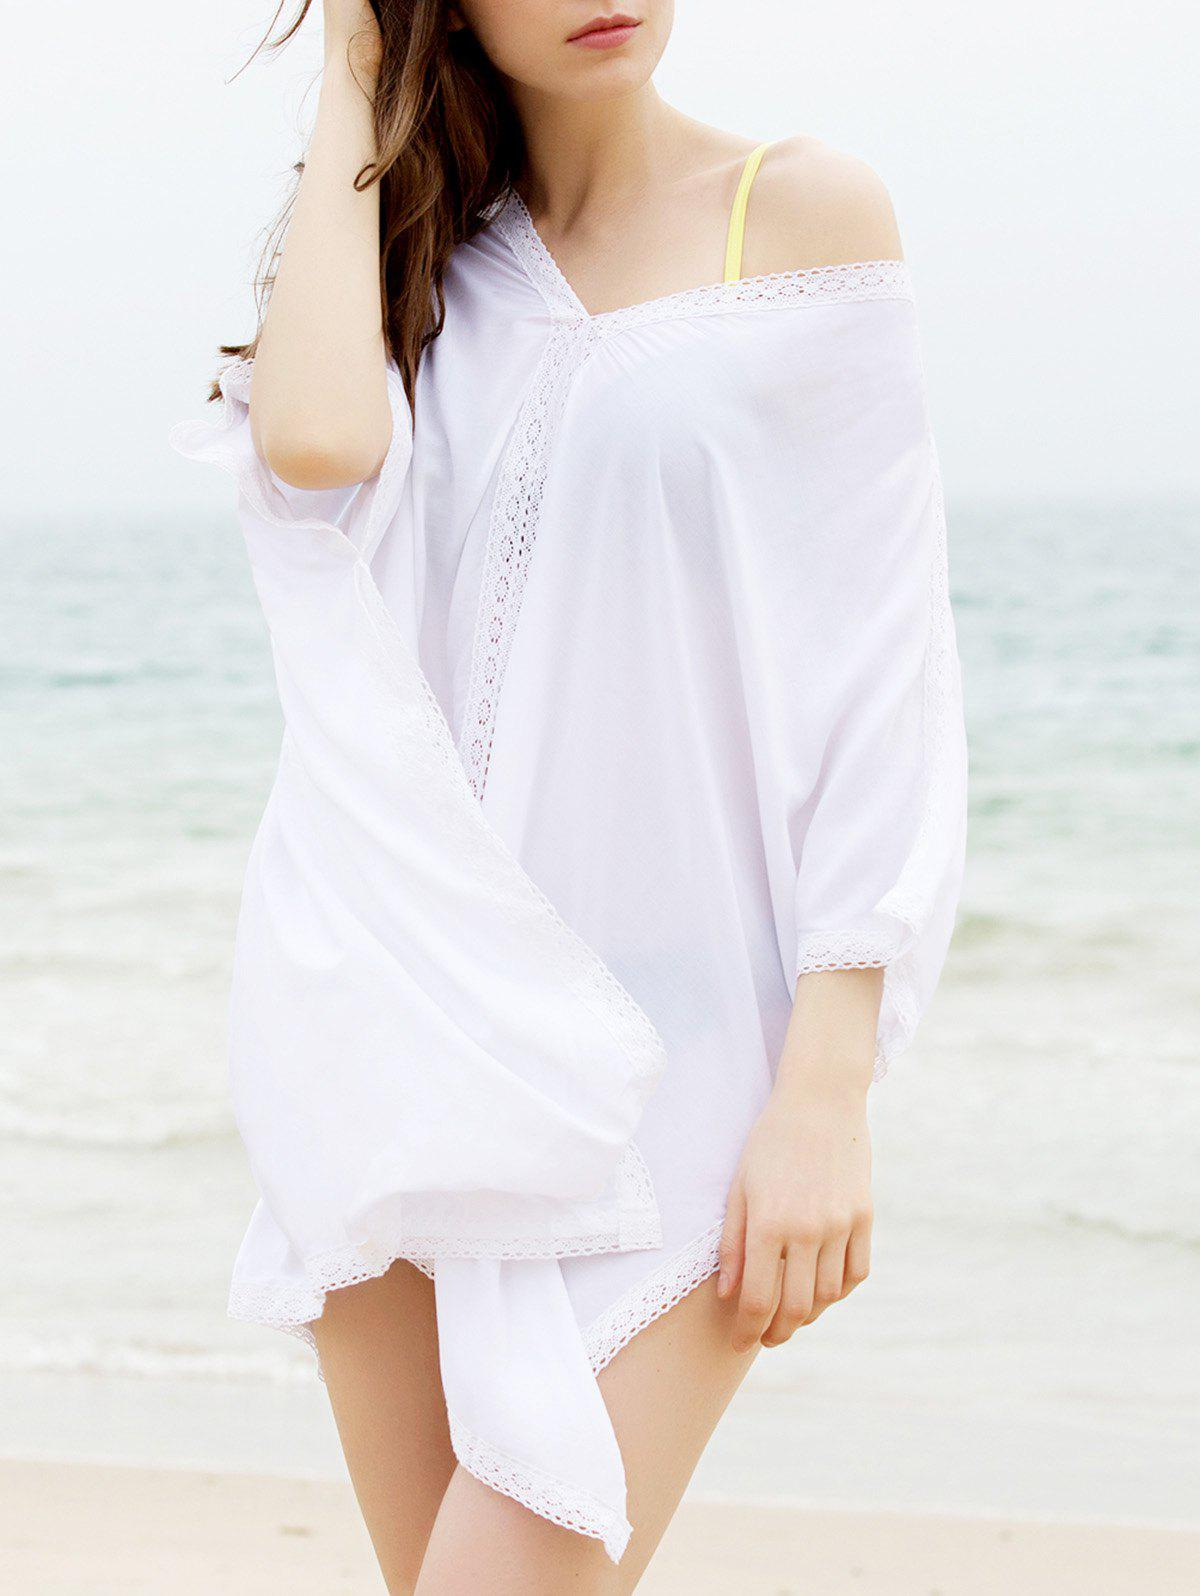 Fashionable Women's Plunging Neck 3/4 Sleeve Cover-Up Dress - WHITE ONE SIZE(FIT SIZE XS TO M)